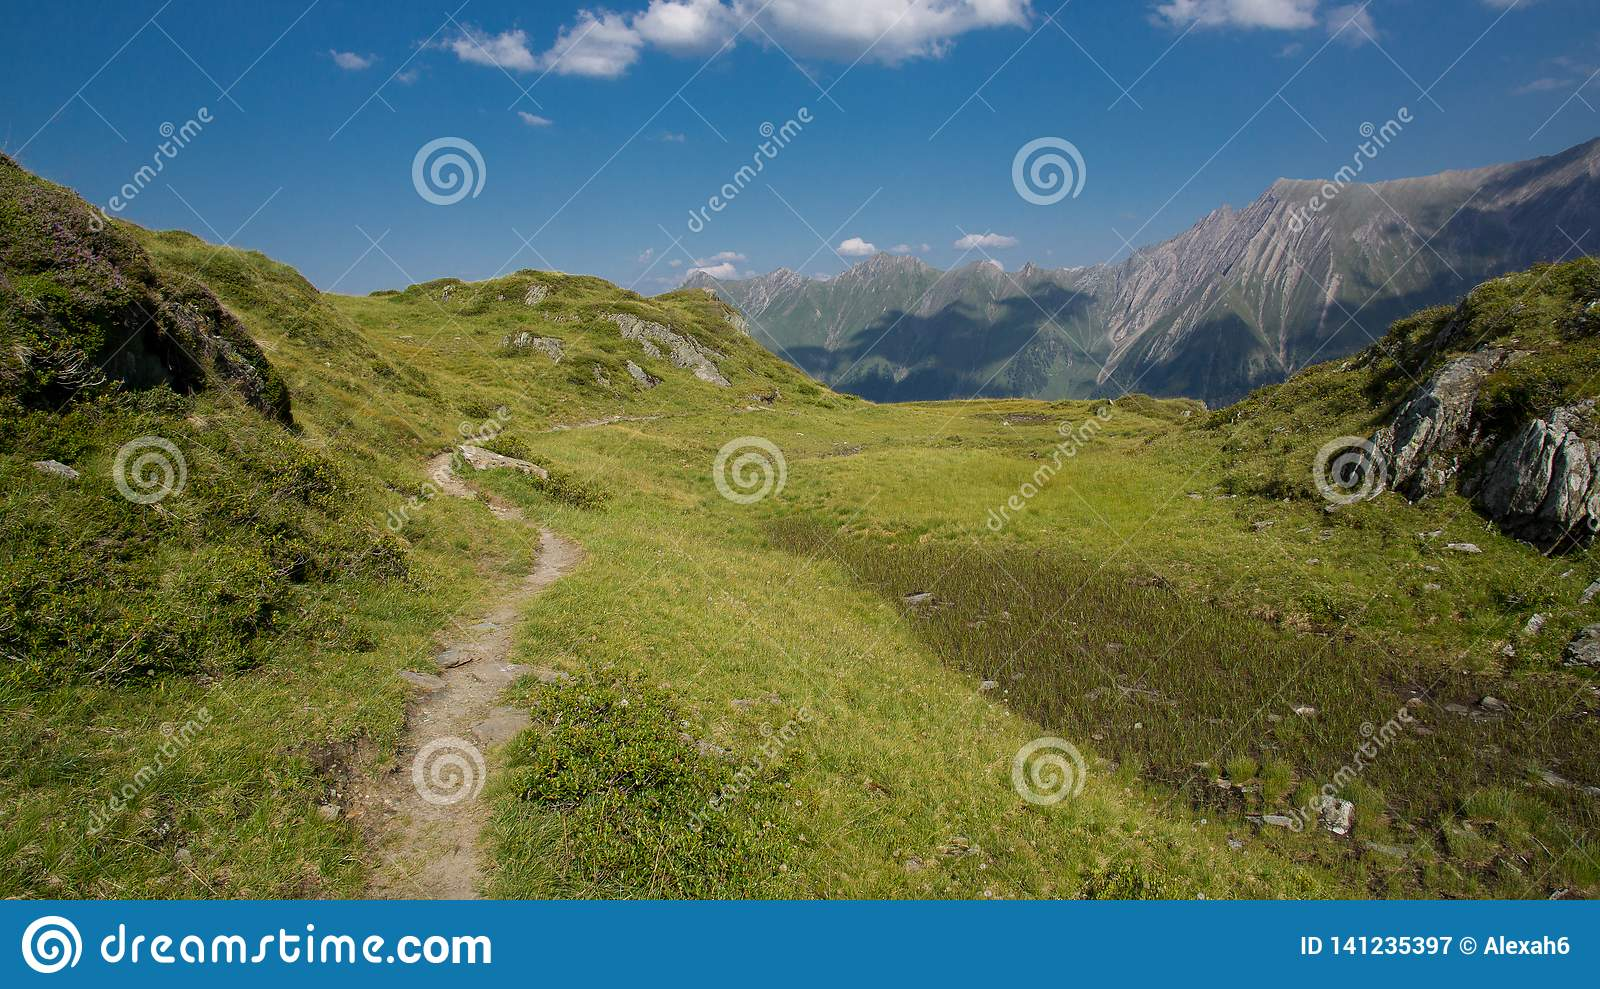 Hiking the alps in summer